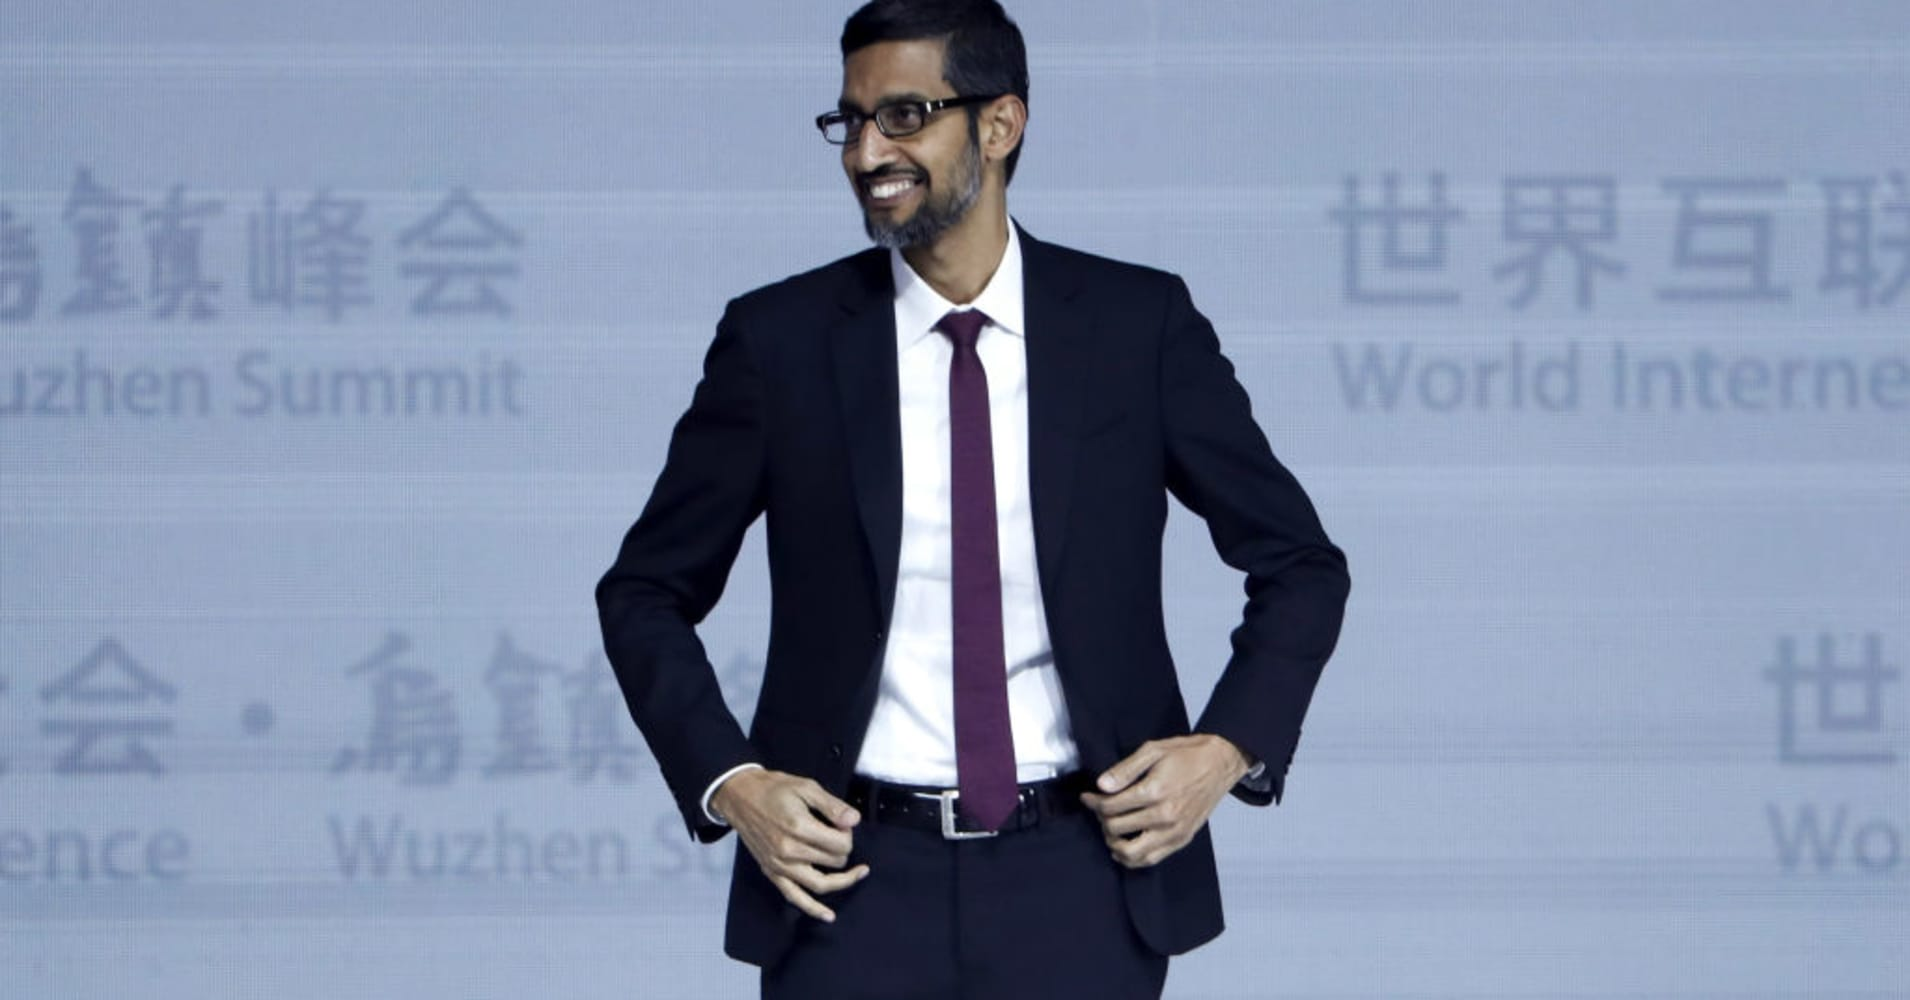 Pichai Makes Case for Potential Move into China by Saying Google Already Censors Info Elsewhere